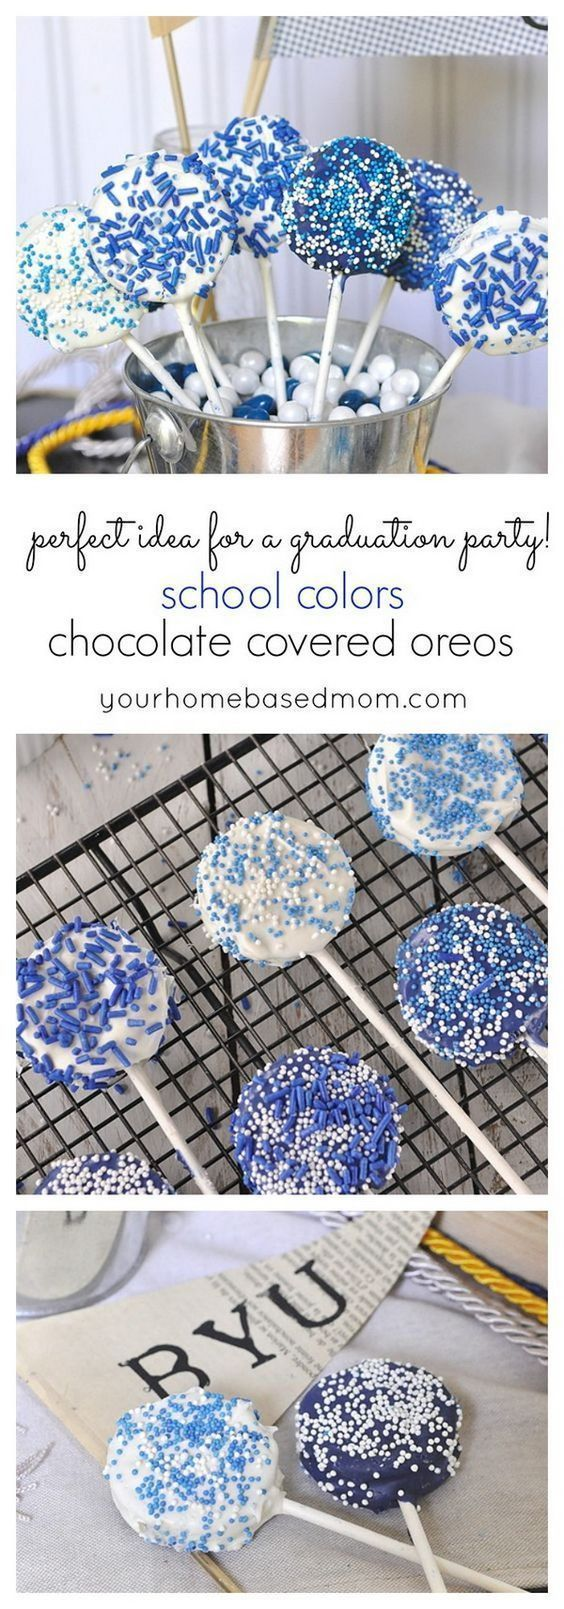 14 Graduation Party Dessert Ideas That Will Match Your Party's Theme #graduationparties